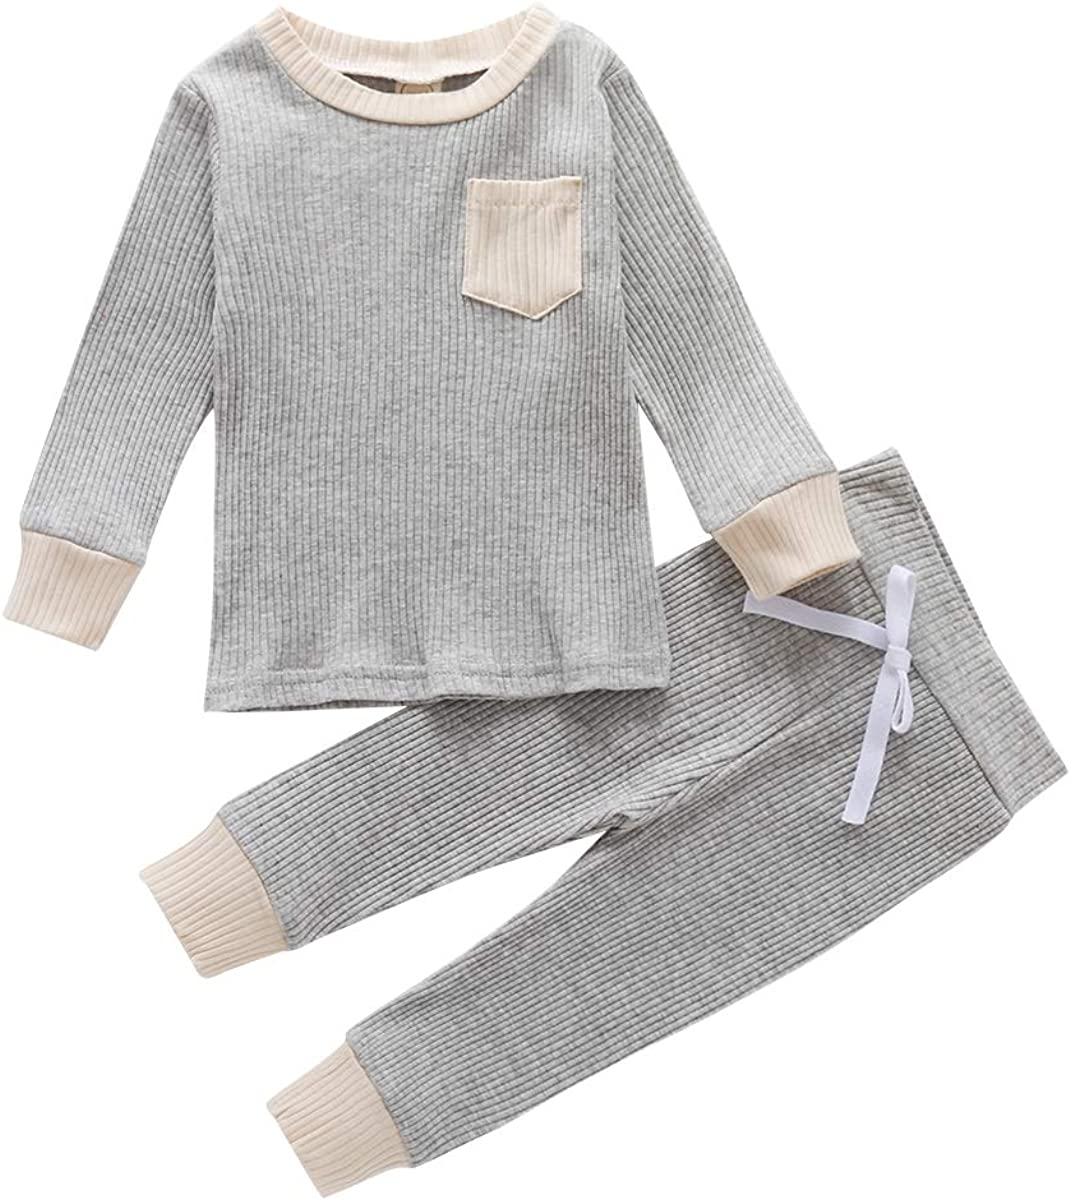 FUFUCAILLM Infant Unisex Baby Clothes Outfits Fall/Winter Sweatshirt with Pants Set 2 Piece Fall Outfit Pajamas Set